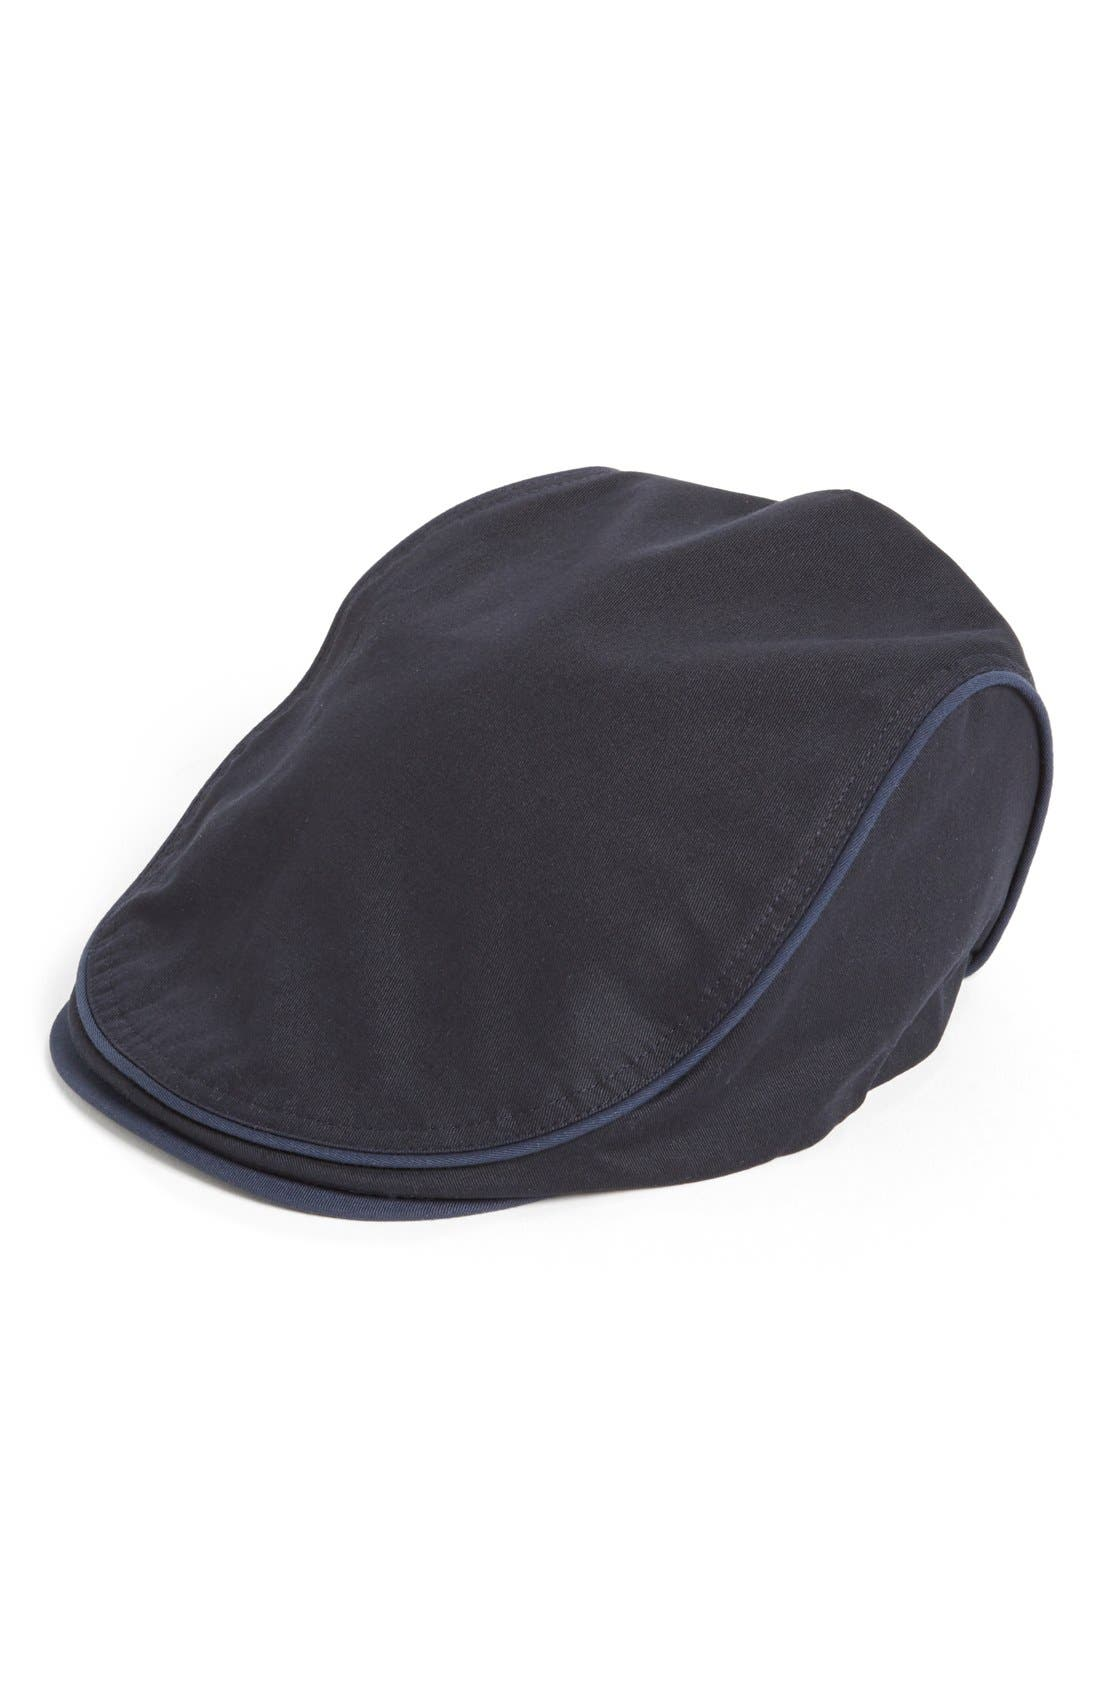 Main Image - Ted Baker London Cotton Driving Cap